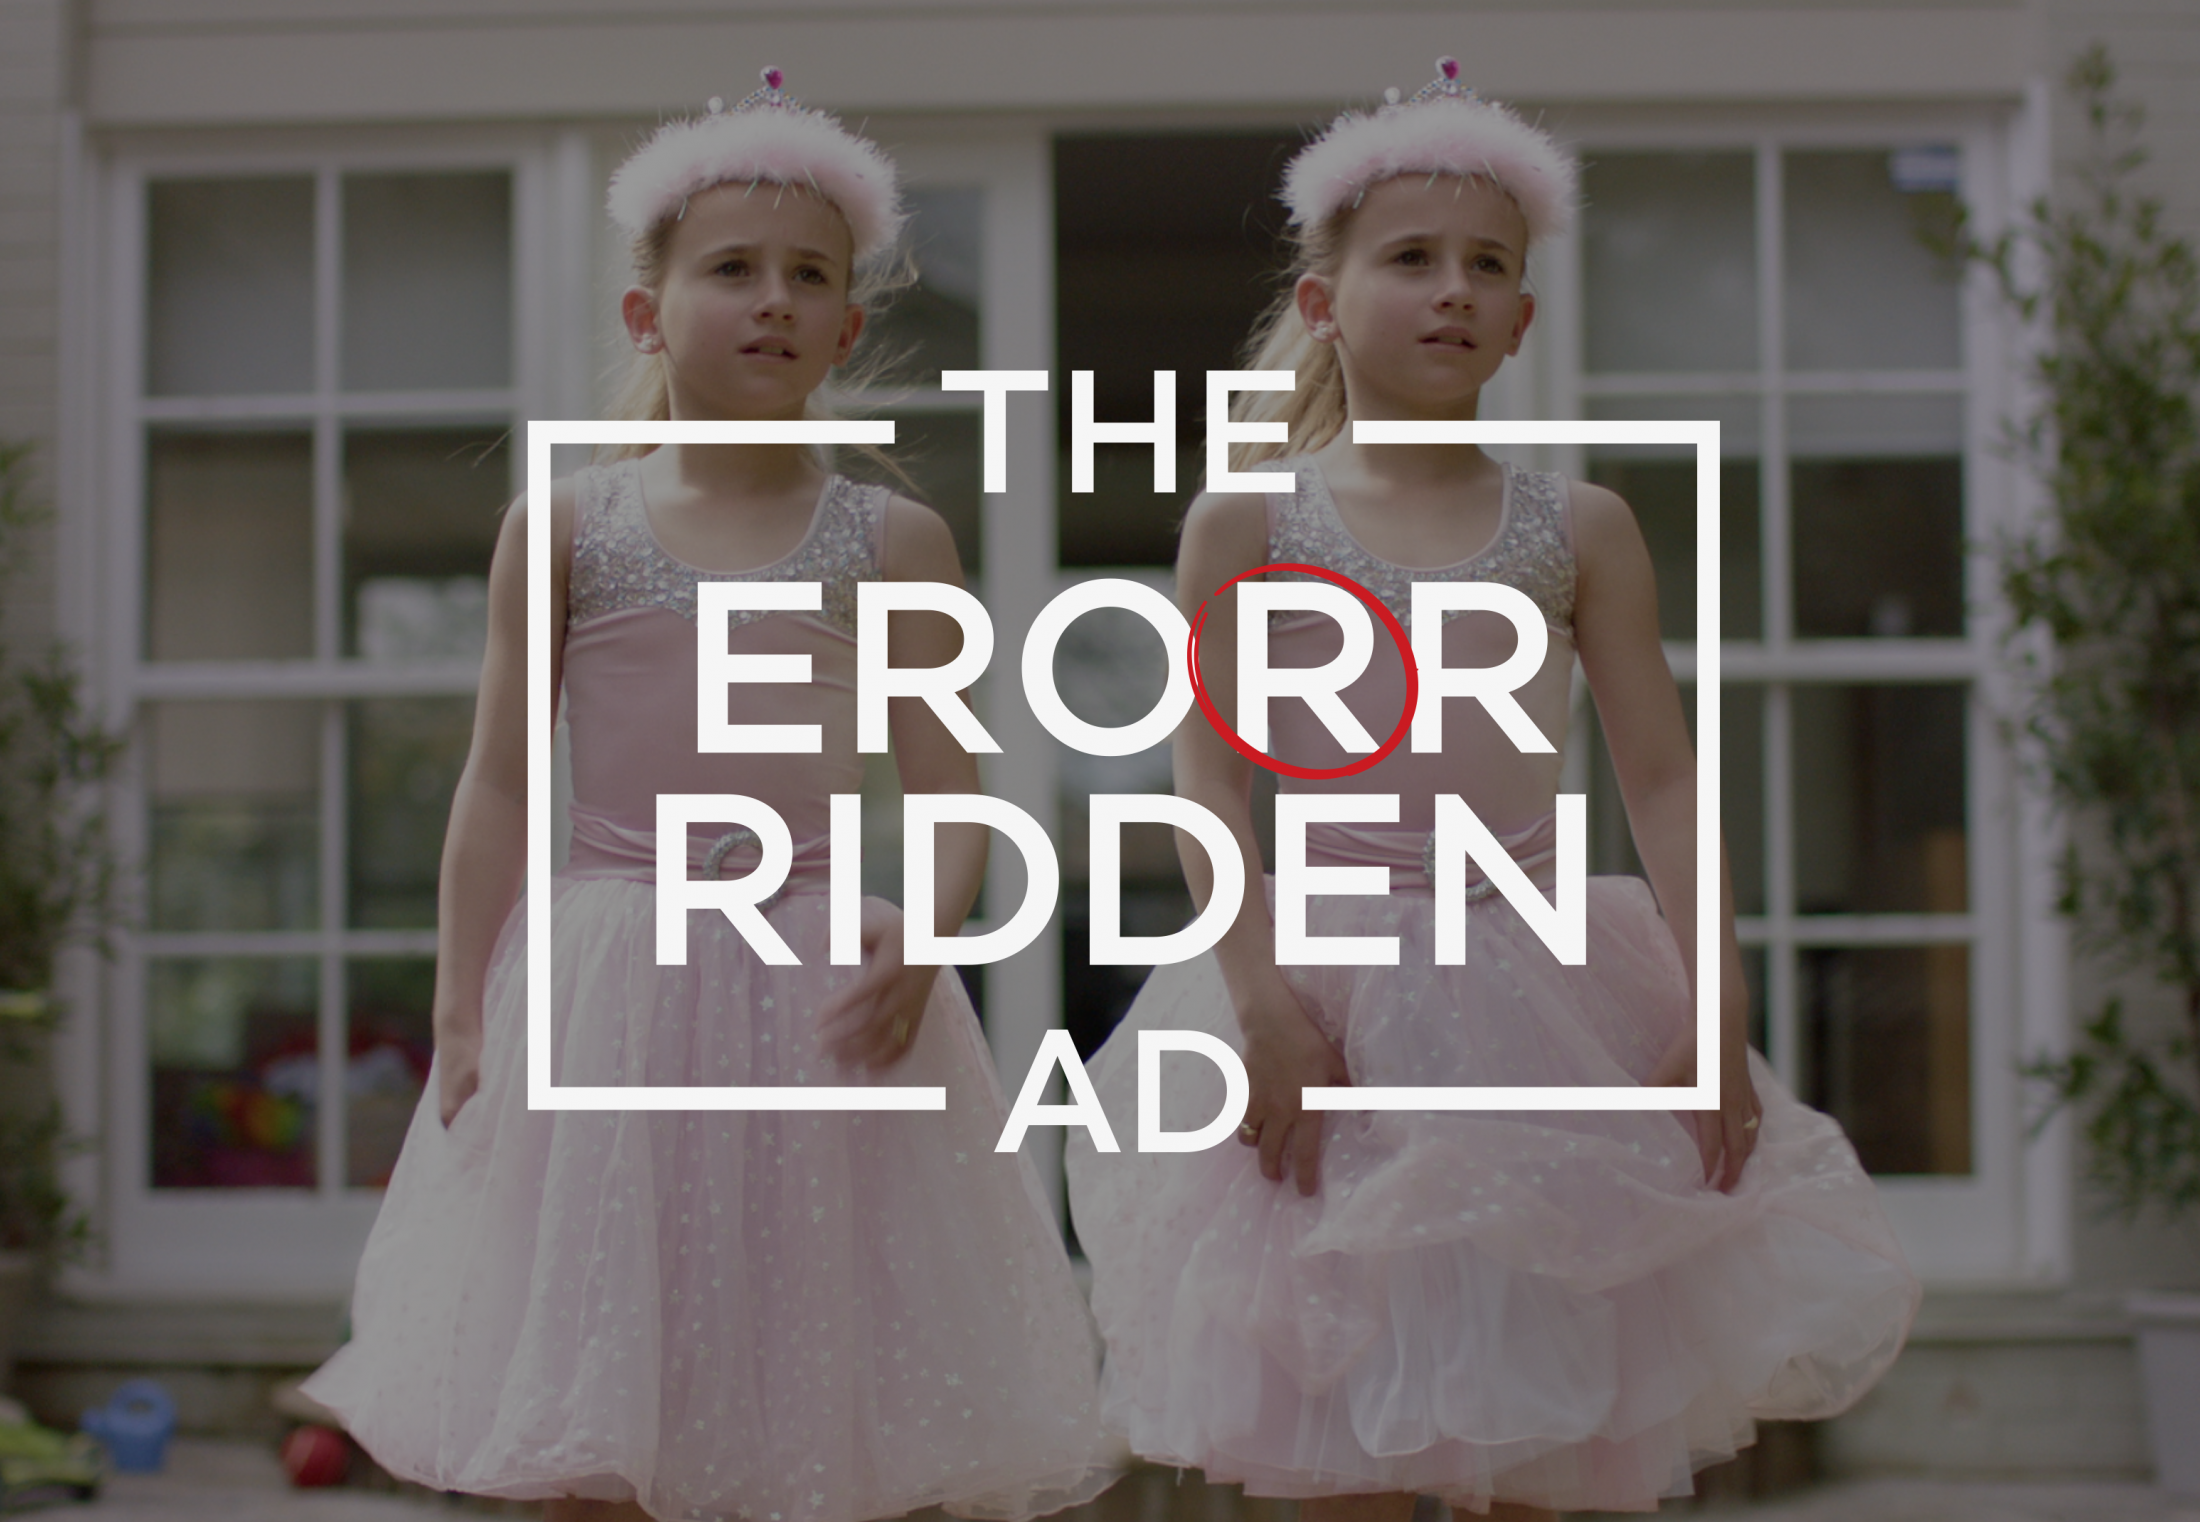 Image Media for Specsavers' The Error Ridden Ad